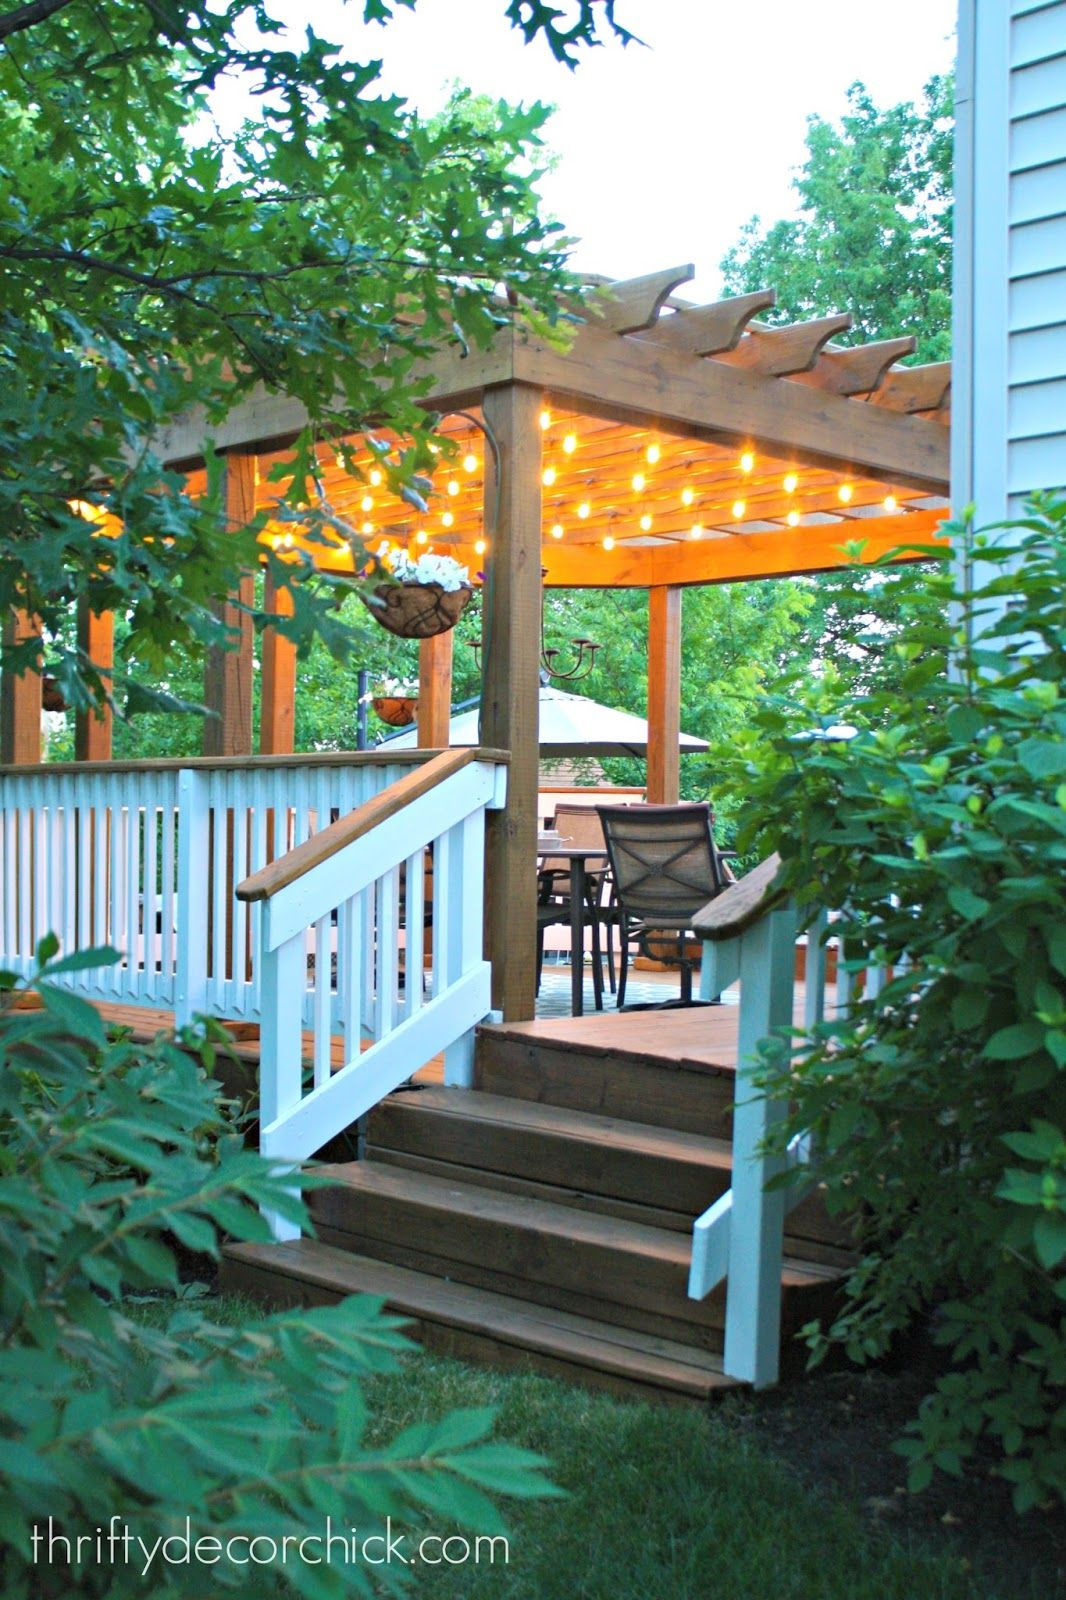 How to hang outdoor string lights from Thrifty Decor Chick